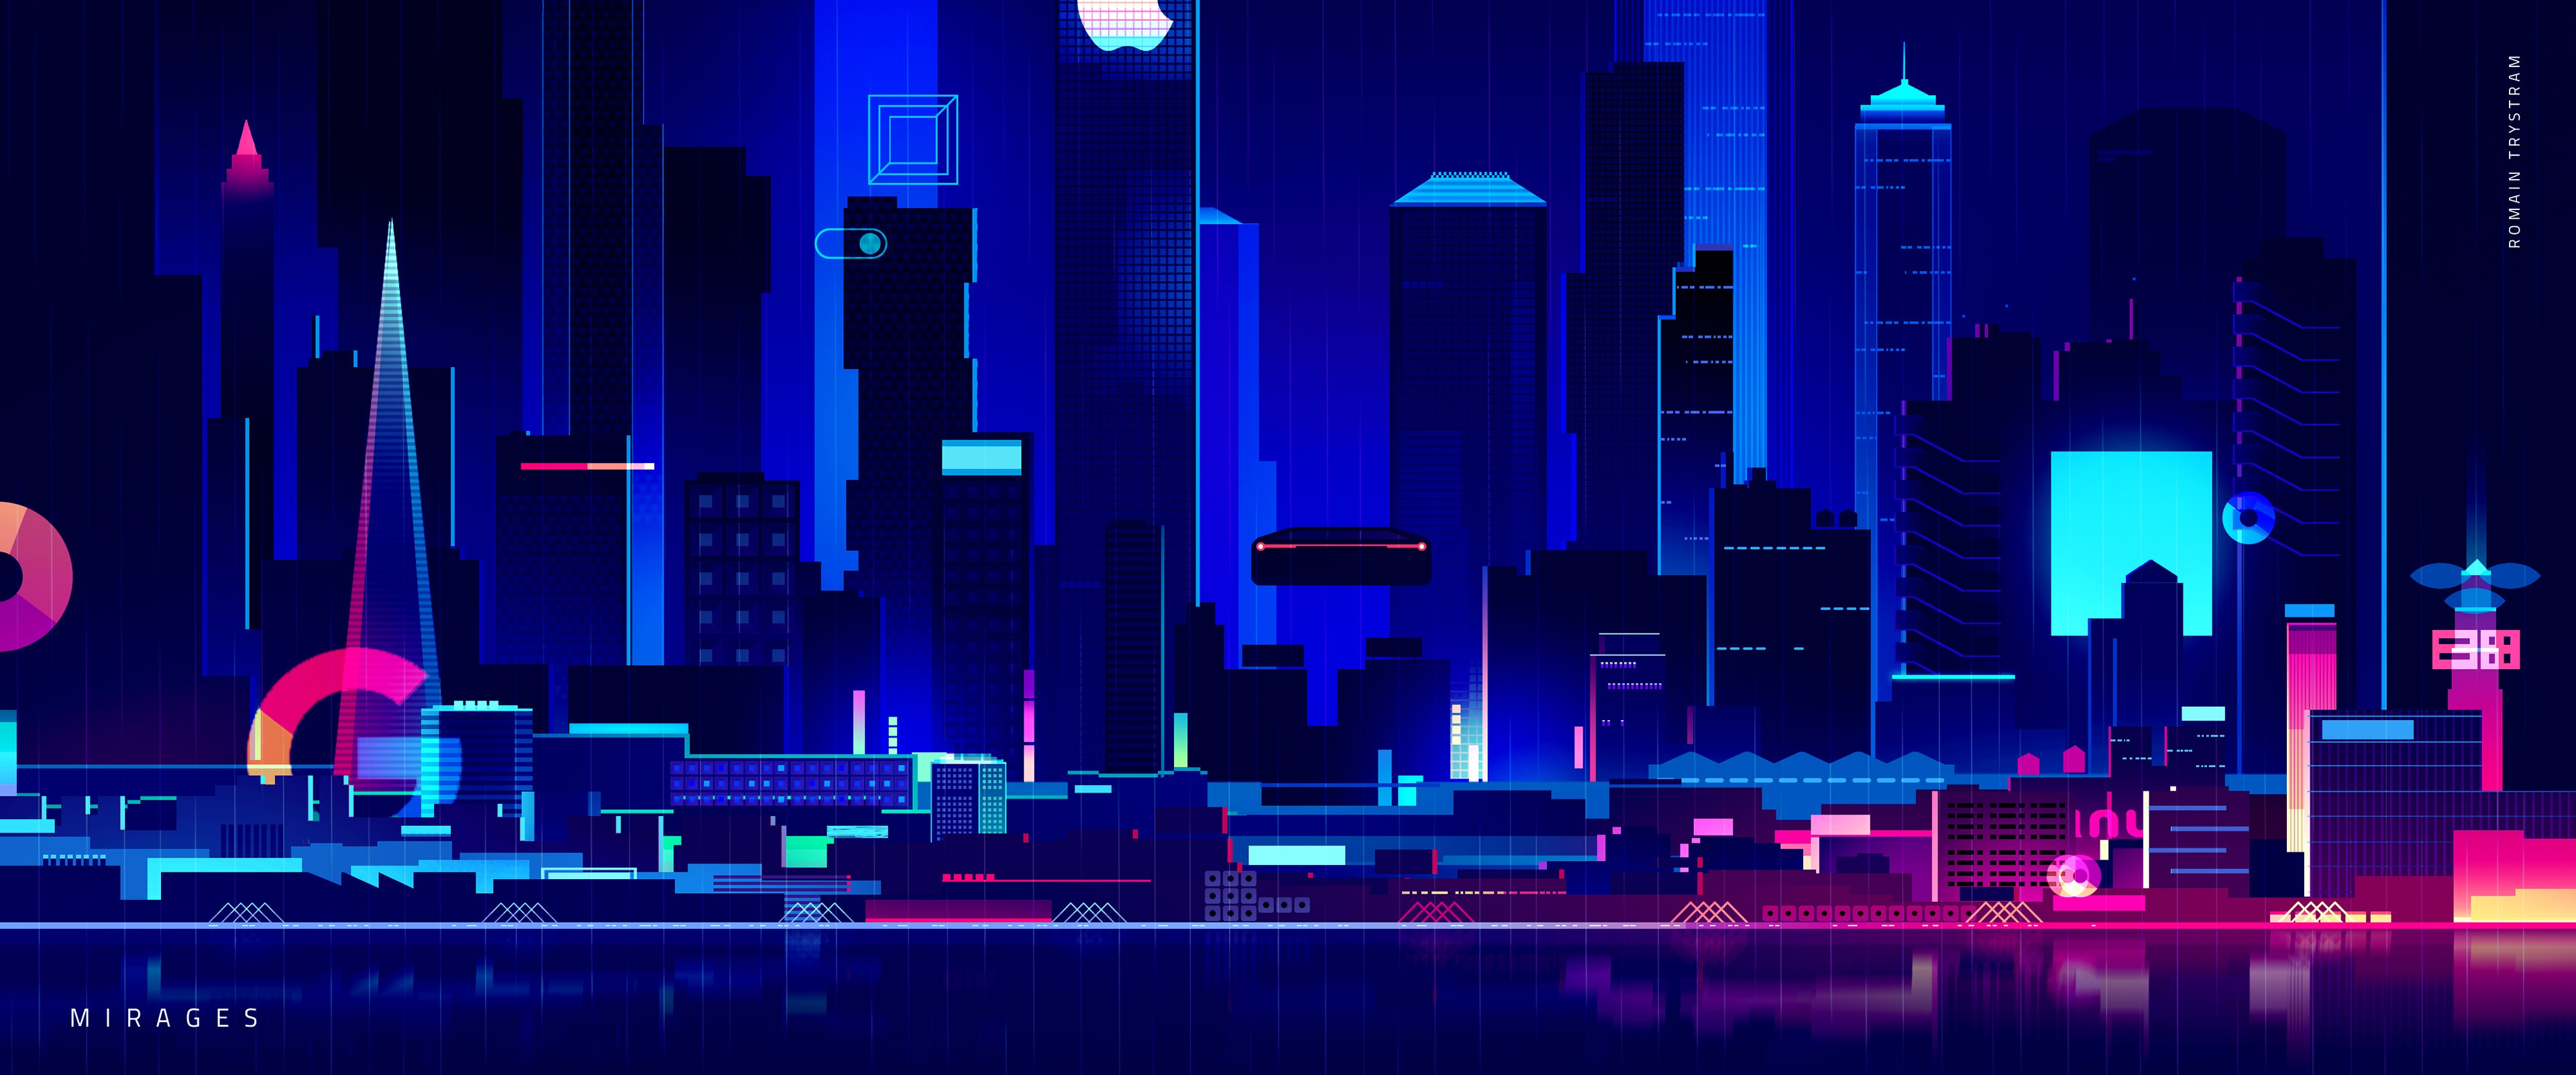 Skyscraper Synthwave Digital Art 4k Hd Artist 4k Wallpapers Images Backgrounds Photos And Pictures